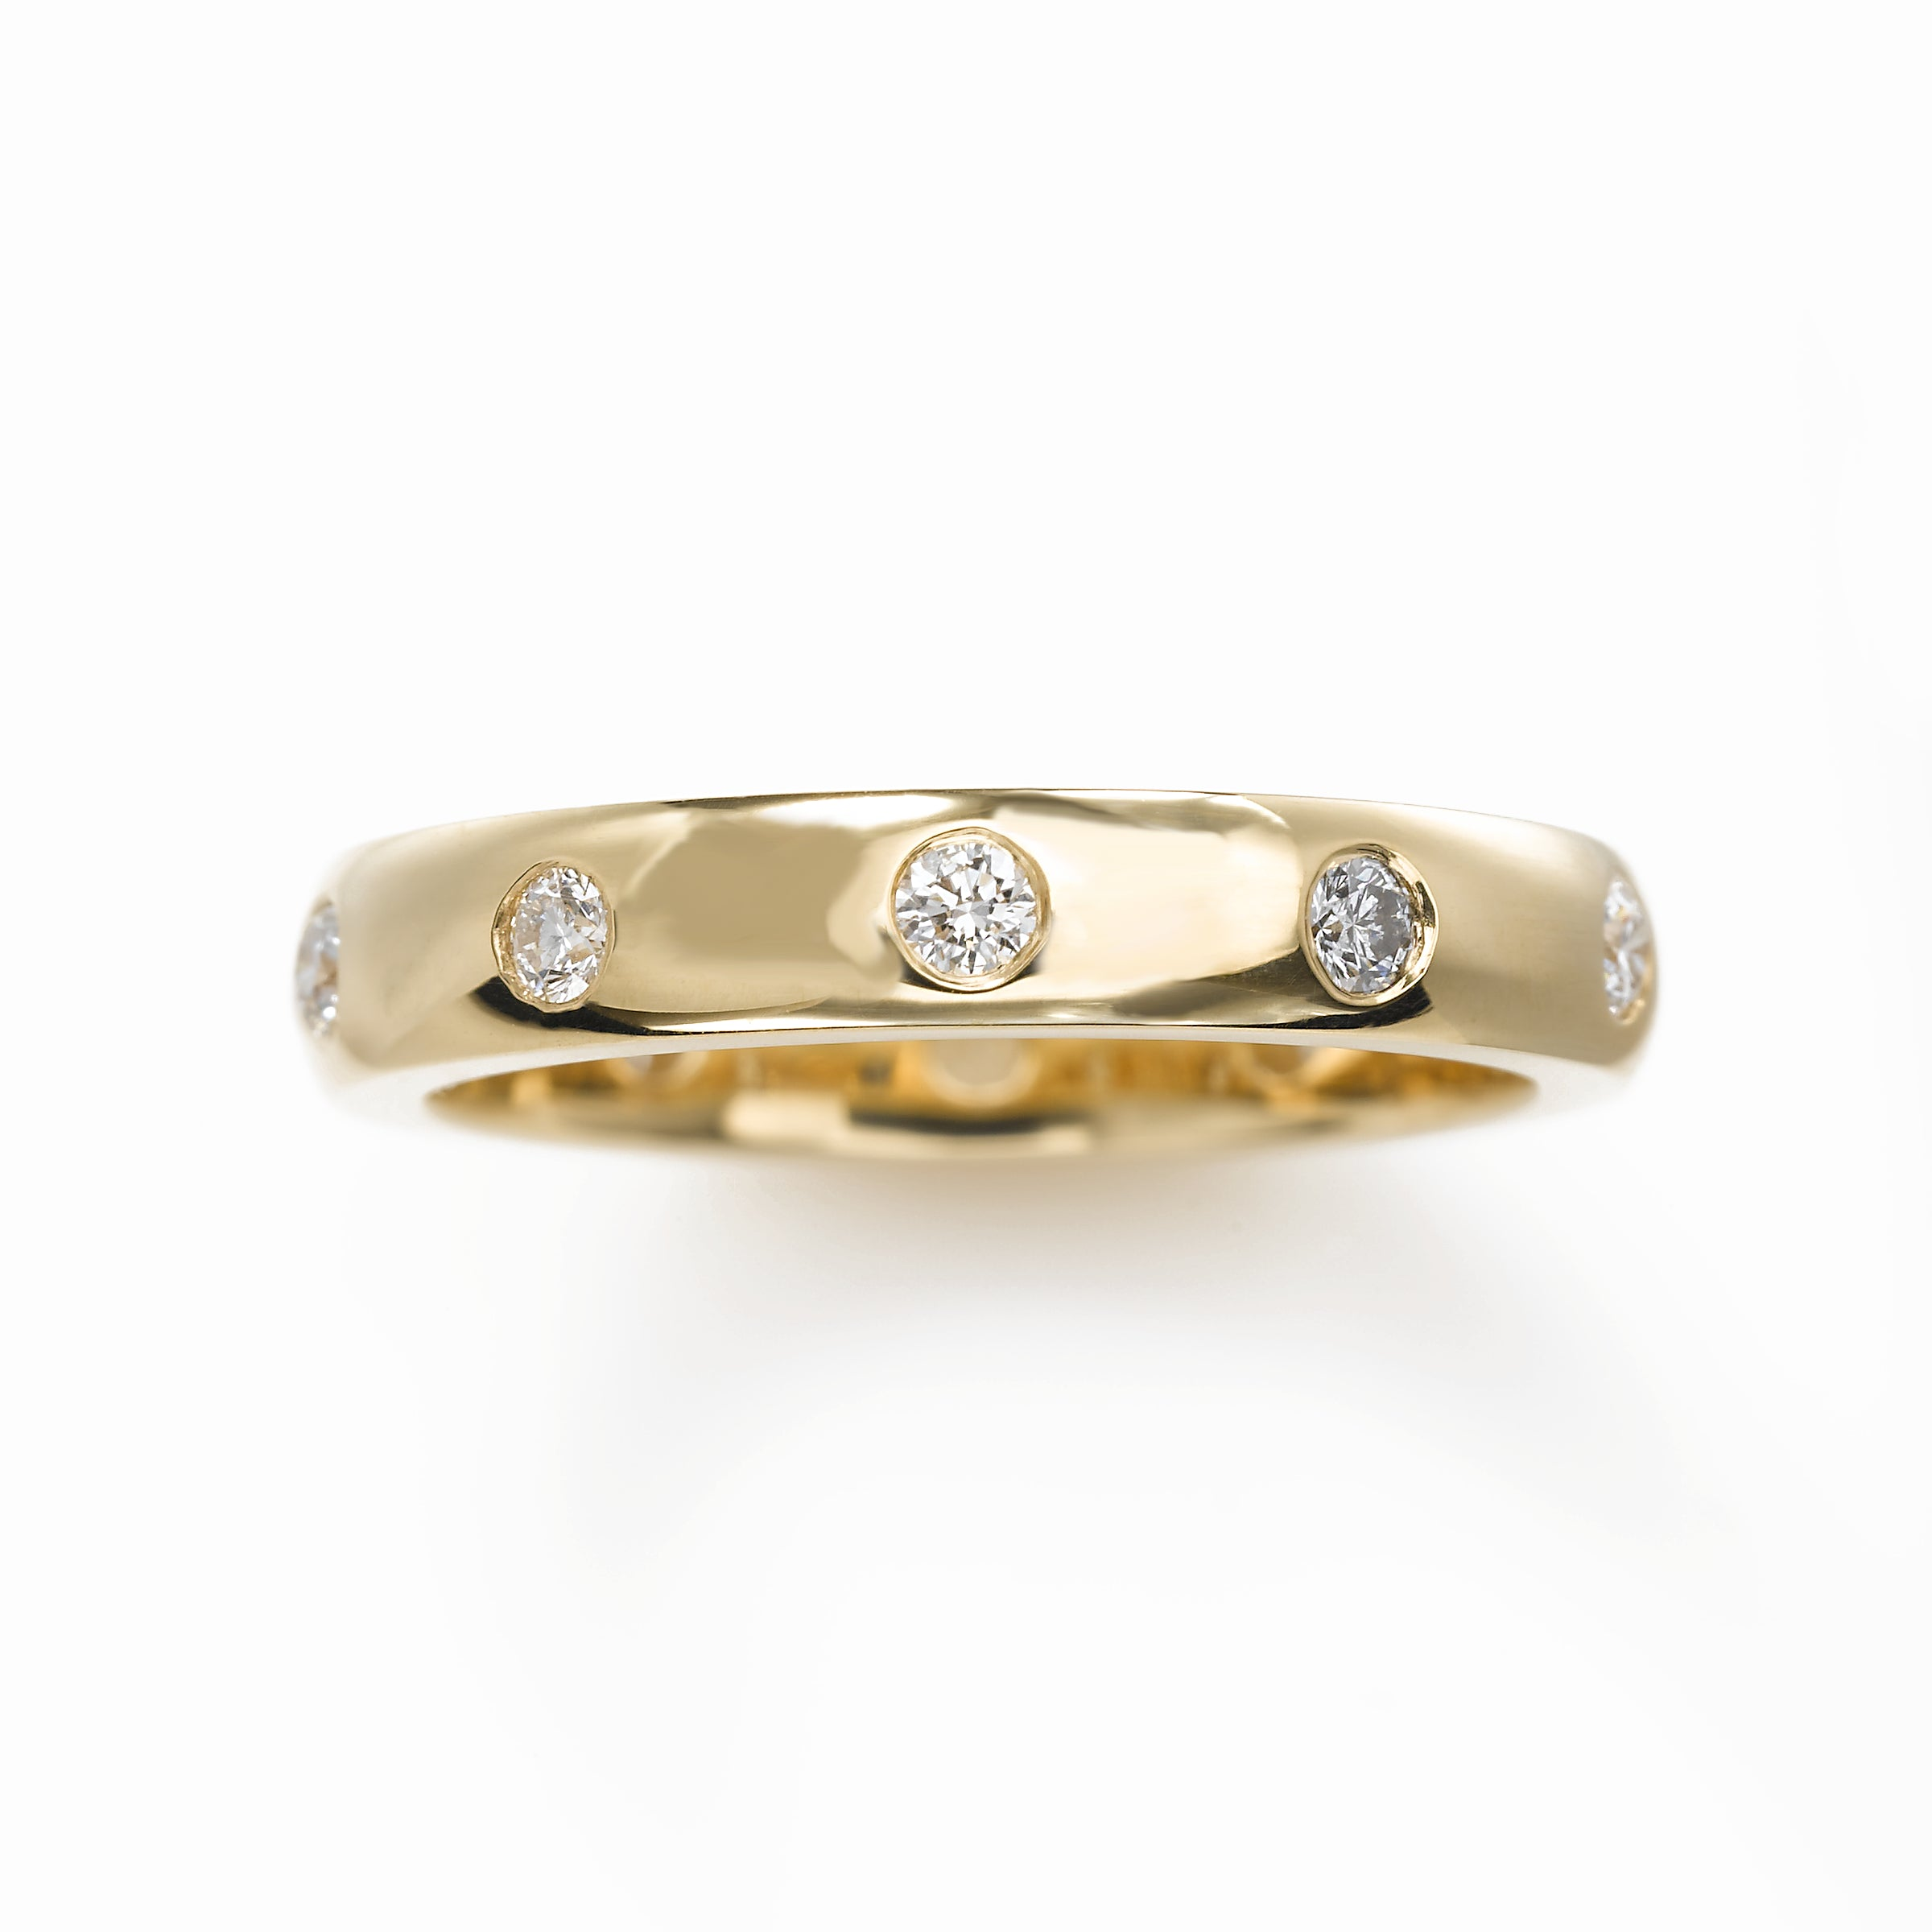 Flush Set .40 carat total Diamond Band, 14K YG